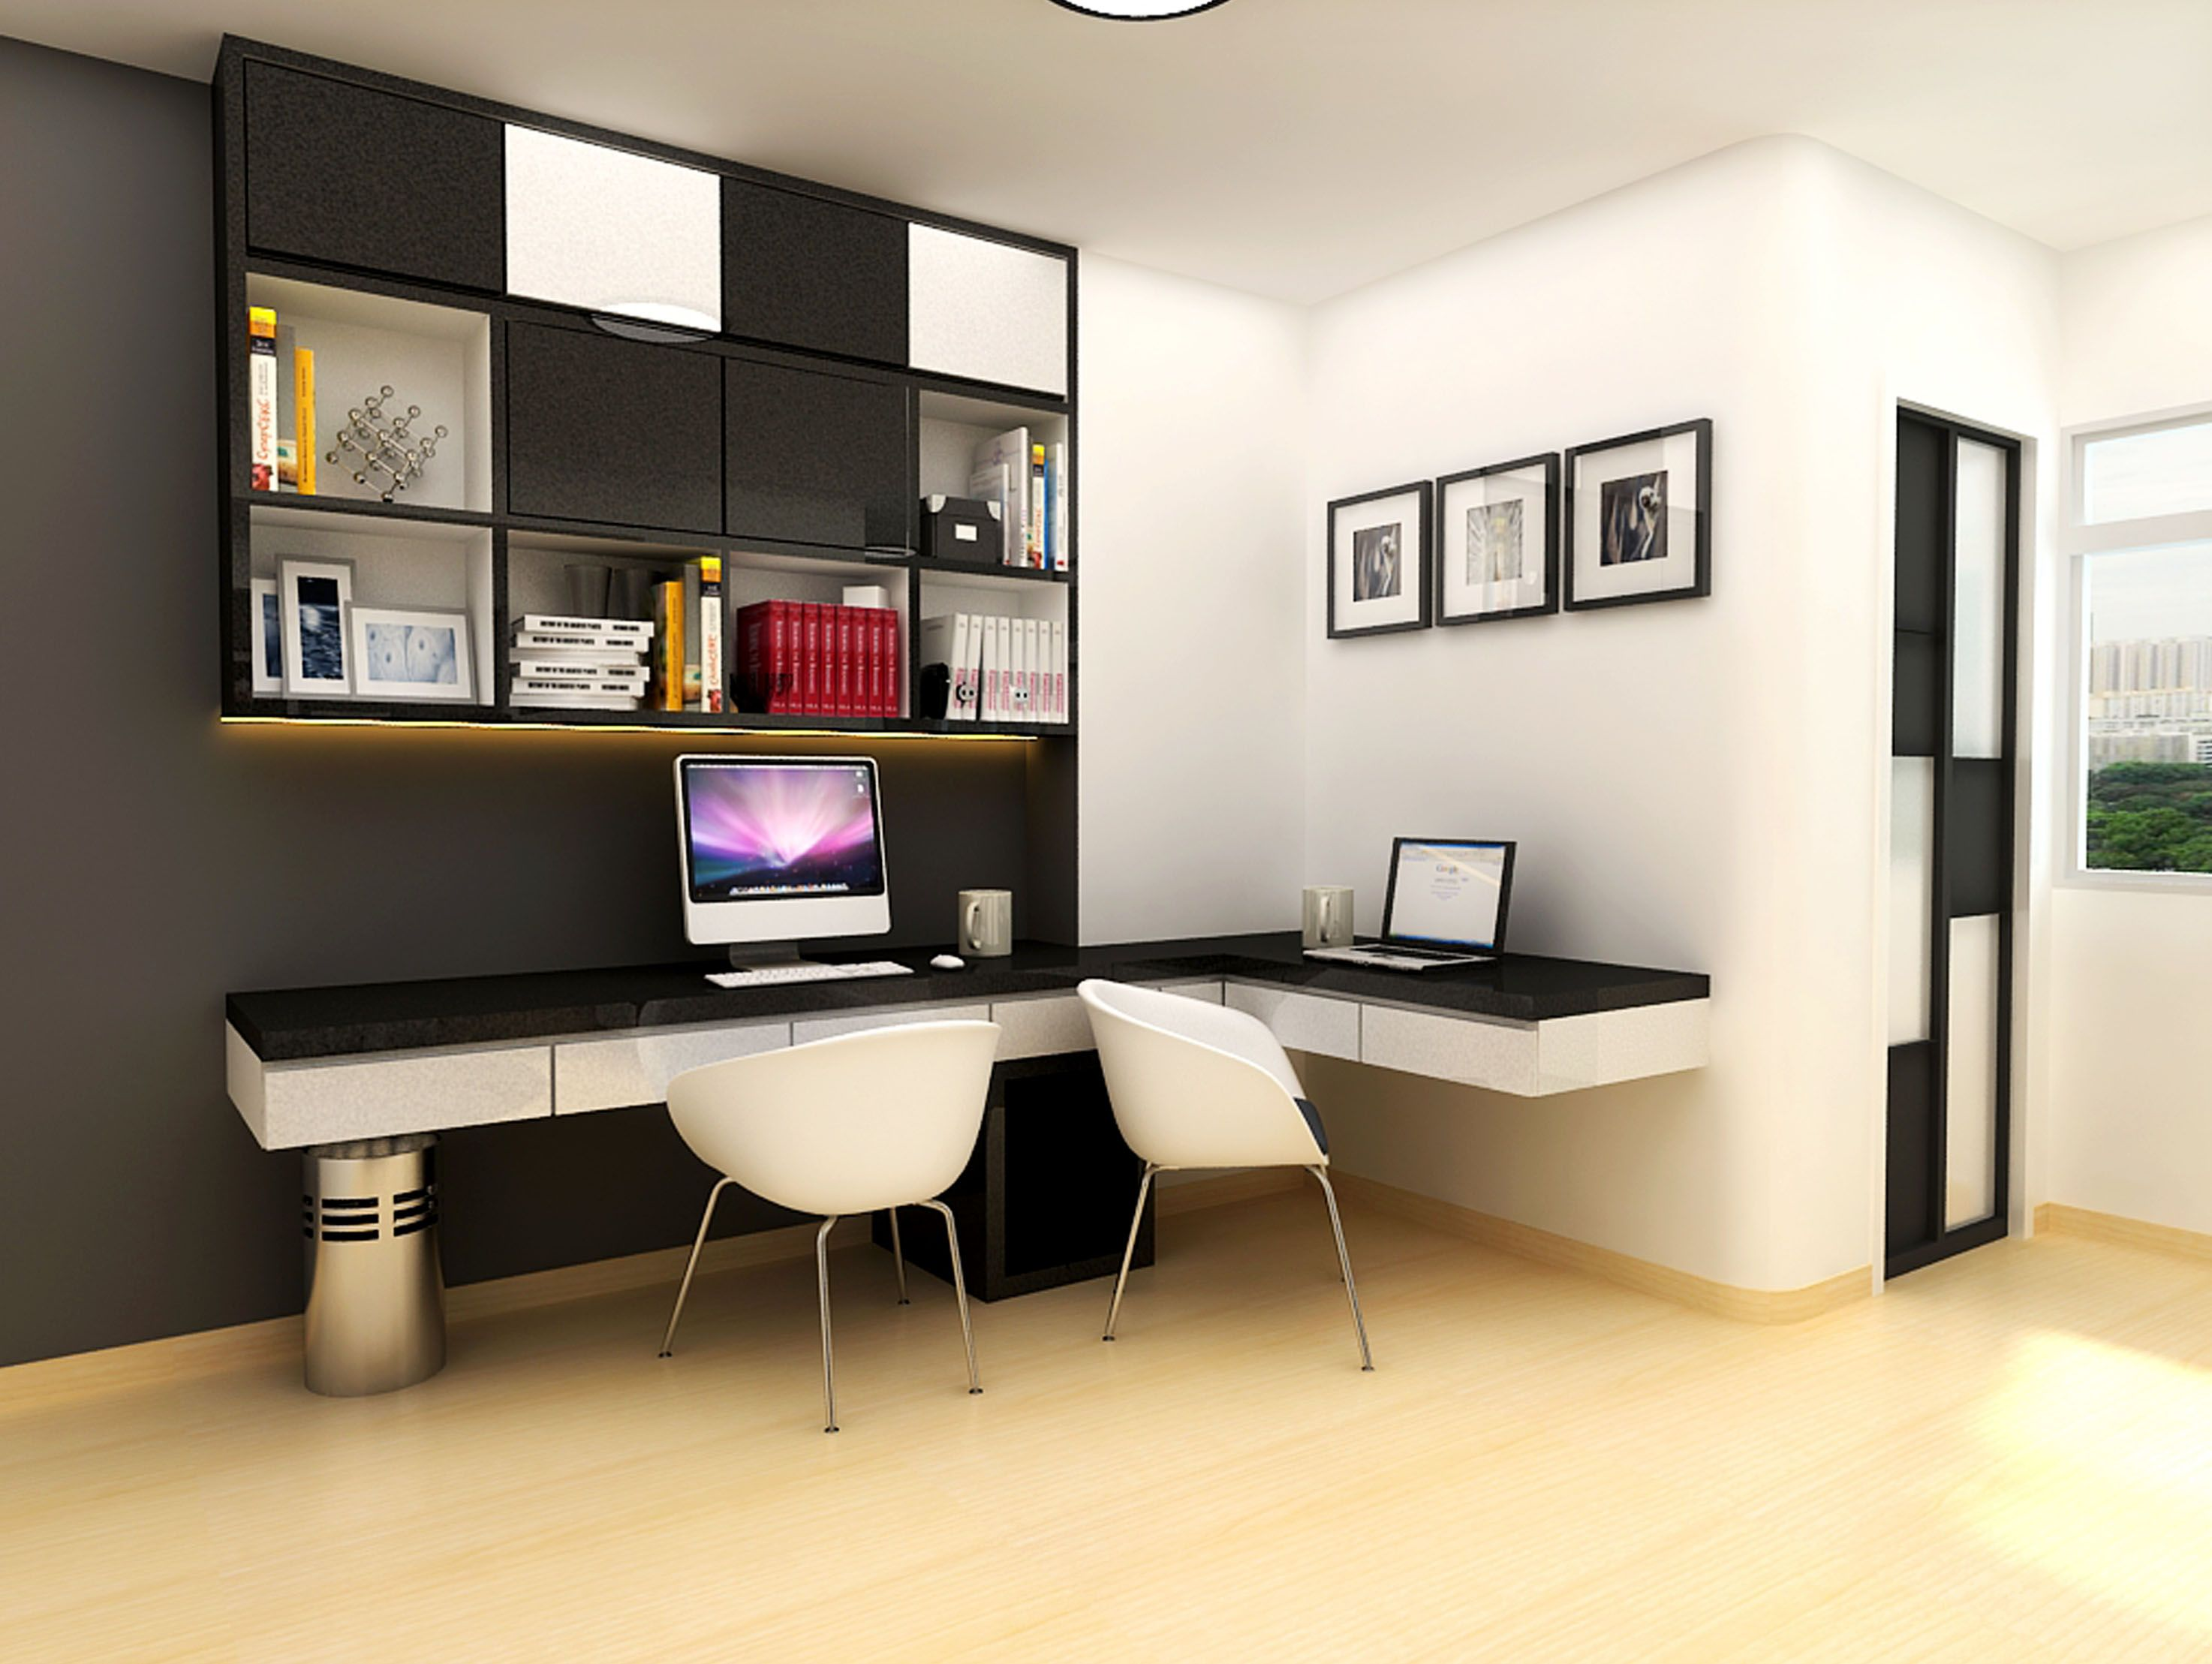 Modern study room design home study room with gym Room builder